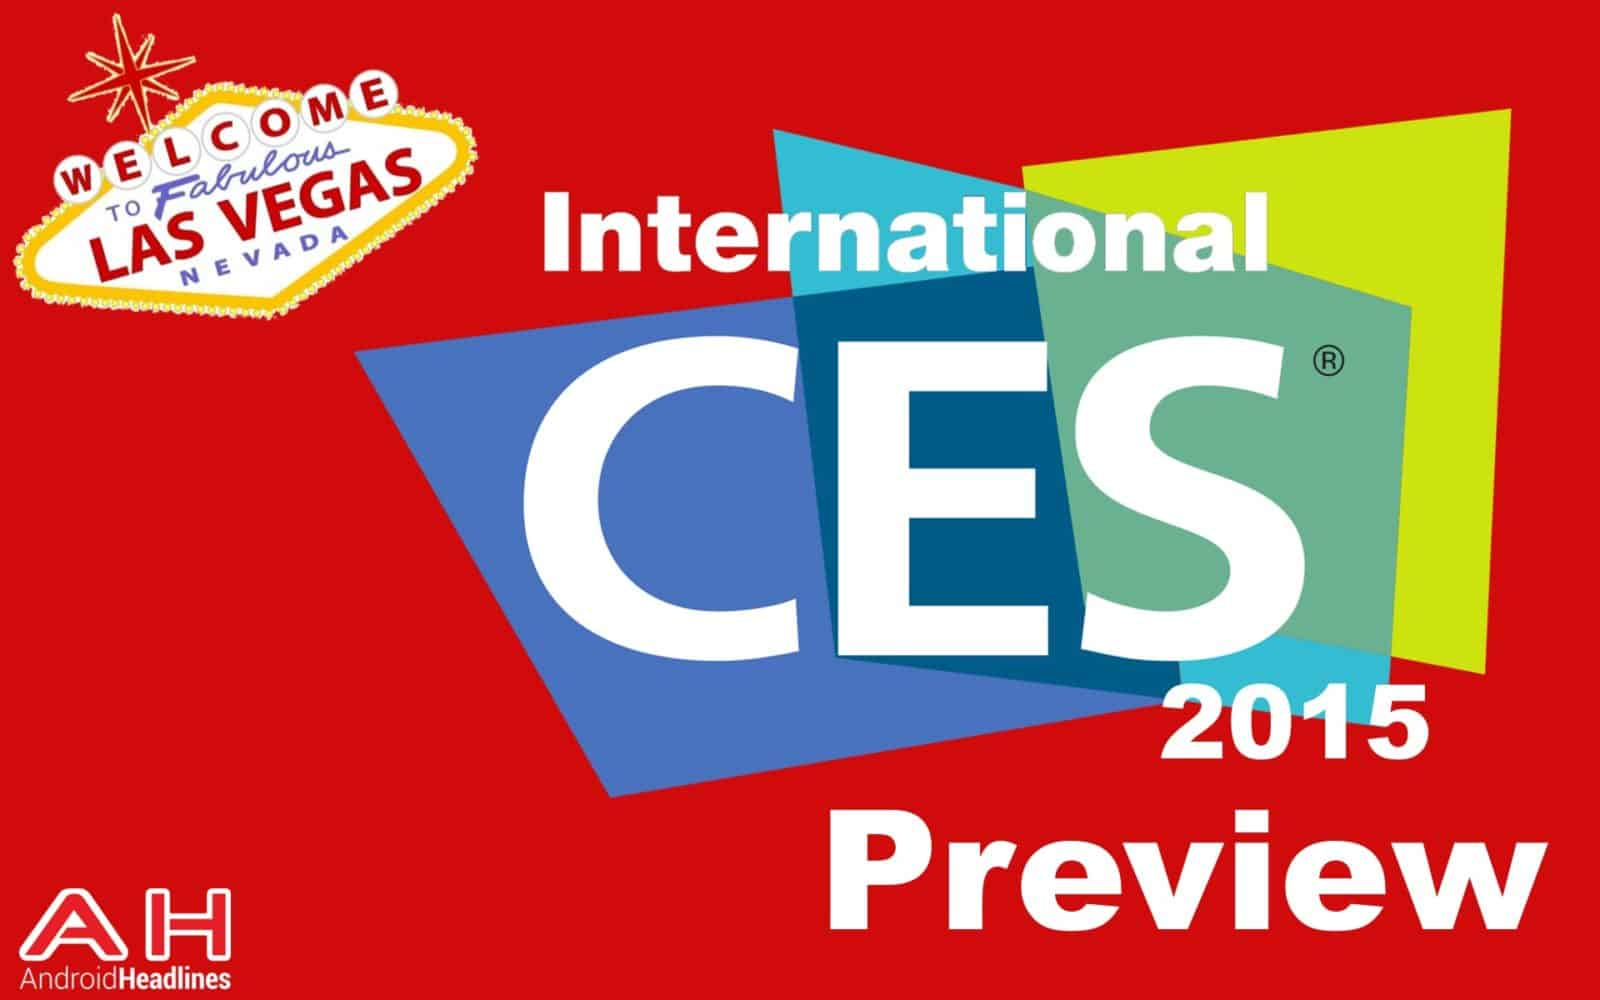 CES Preview 2015 Android Headlines